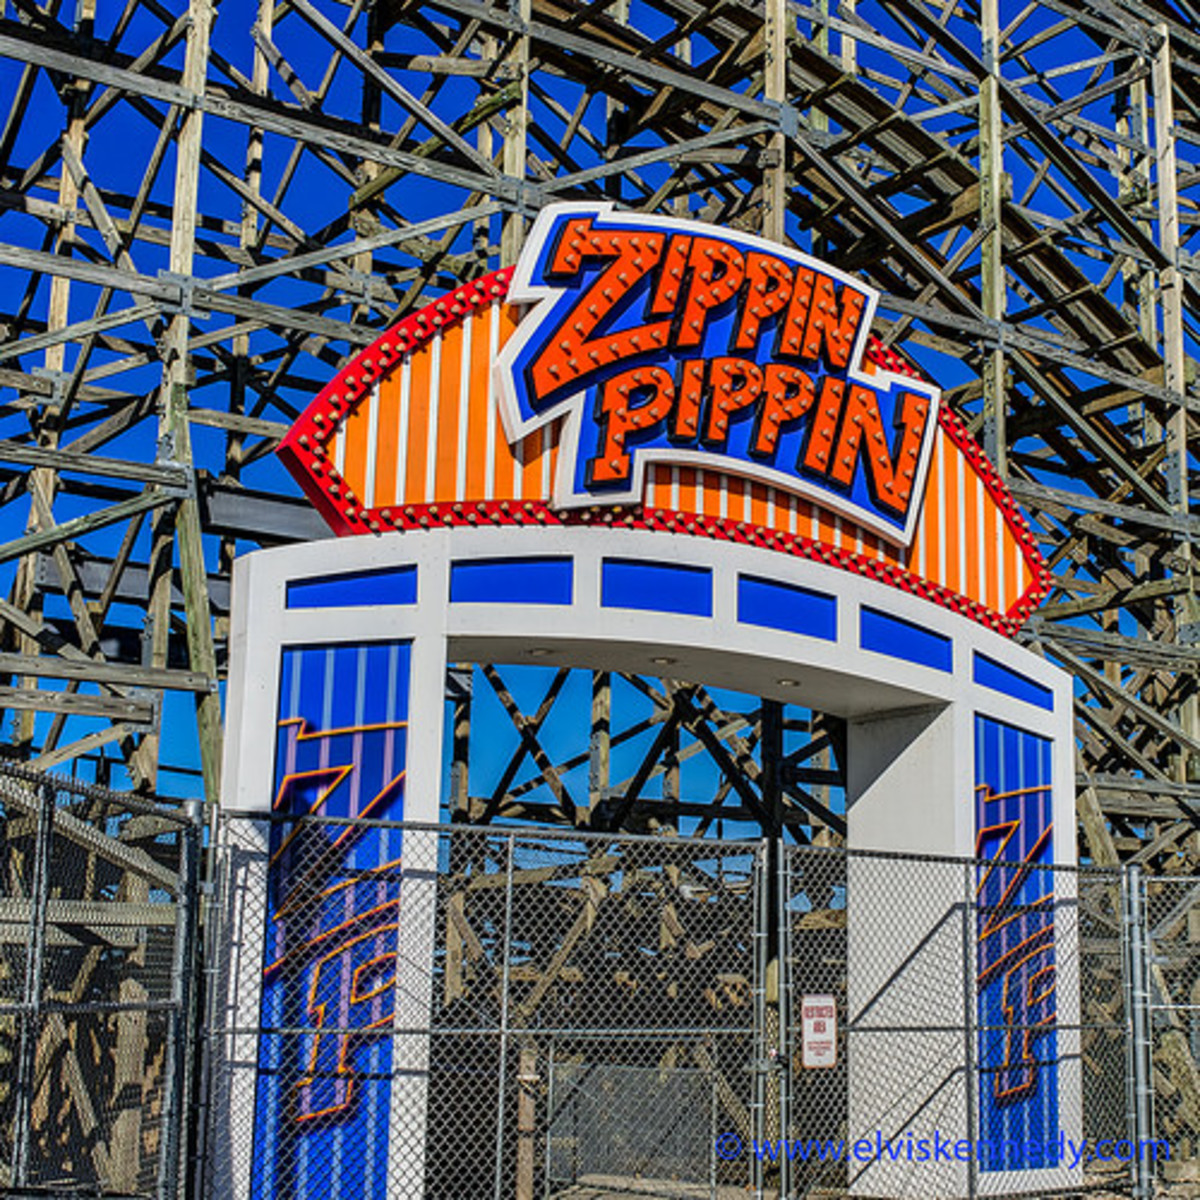 Green Bay and the Zippin Pippin are only 2 1/2 hours away.